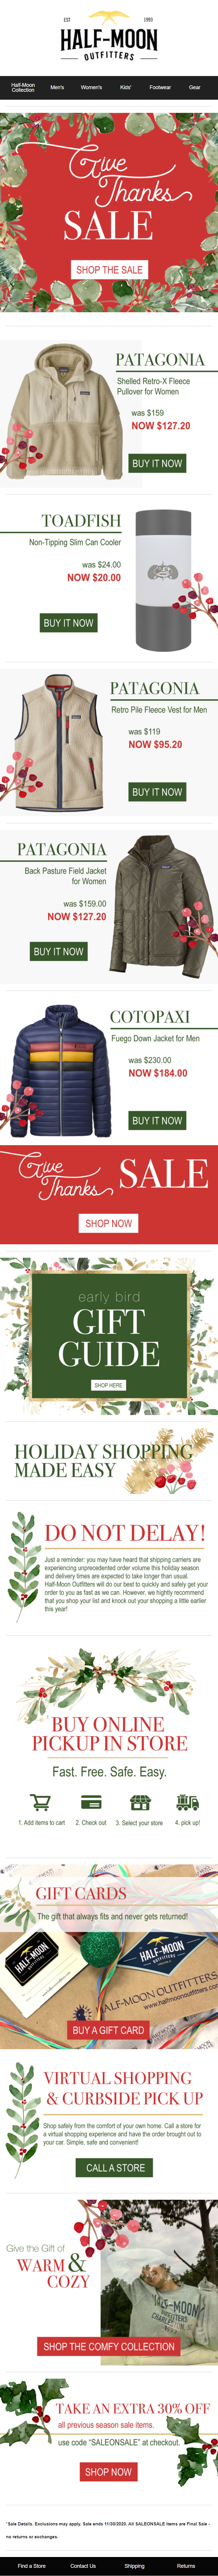 half-moon-outfitters-the-early-thanksgiving-sale-starts-now